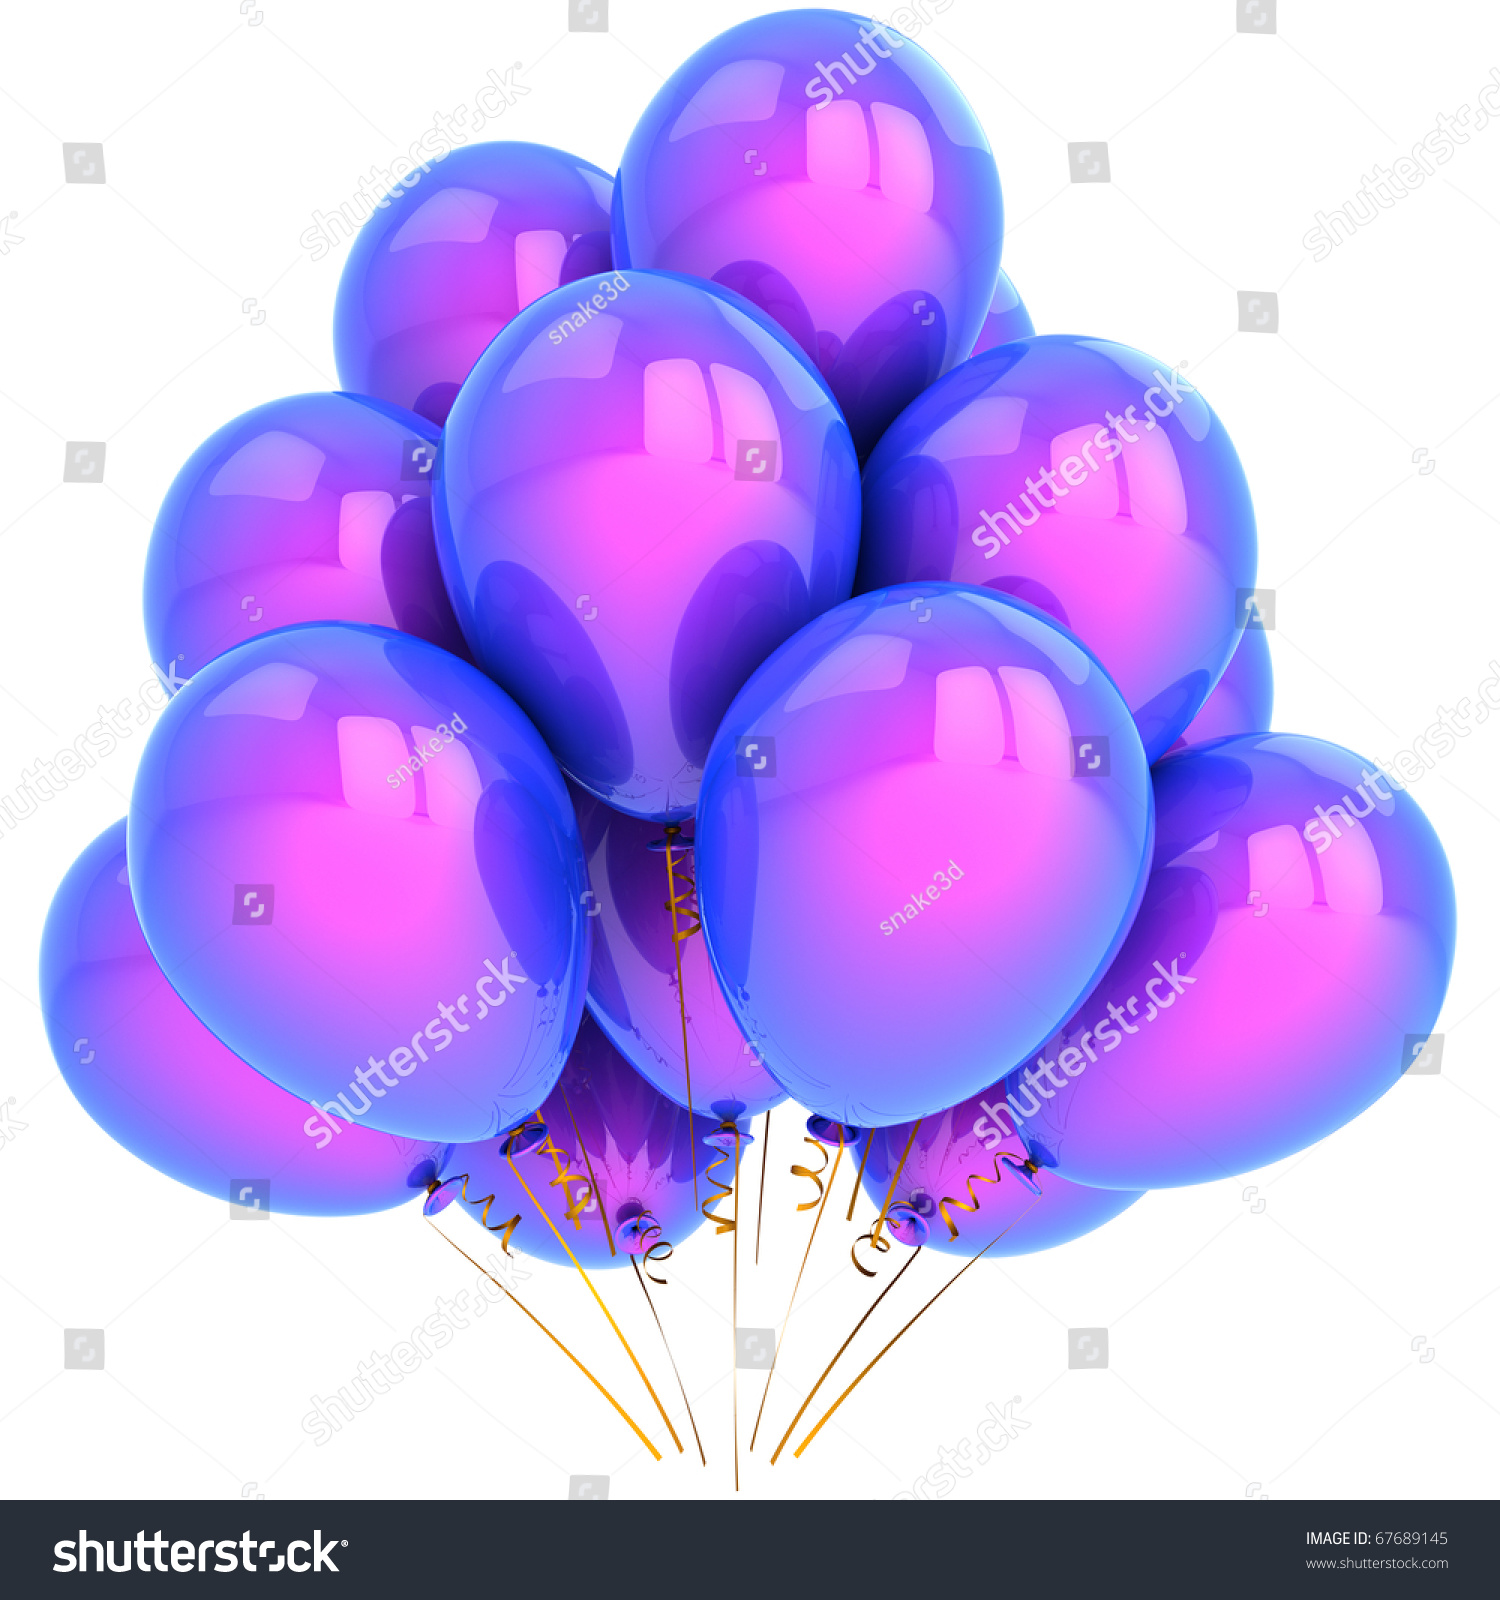 Gymnastics Birthday Party Decorations Similiar Purple Blue Birthday Party Decorations Keywords